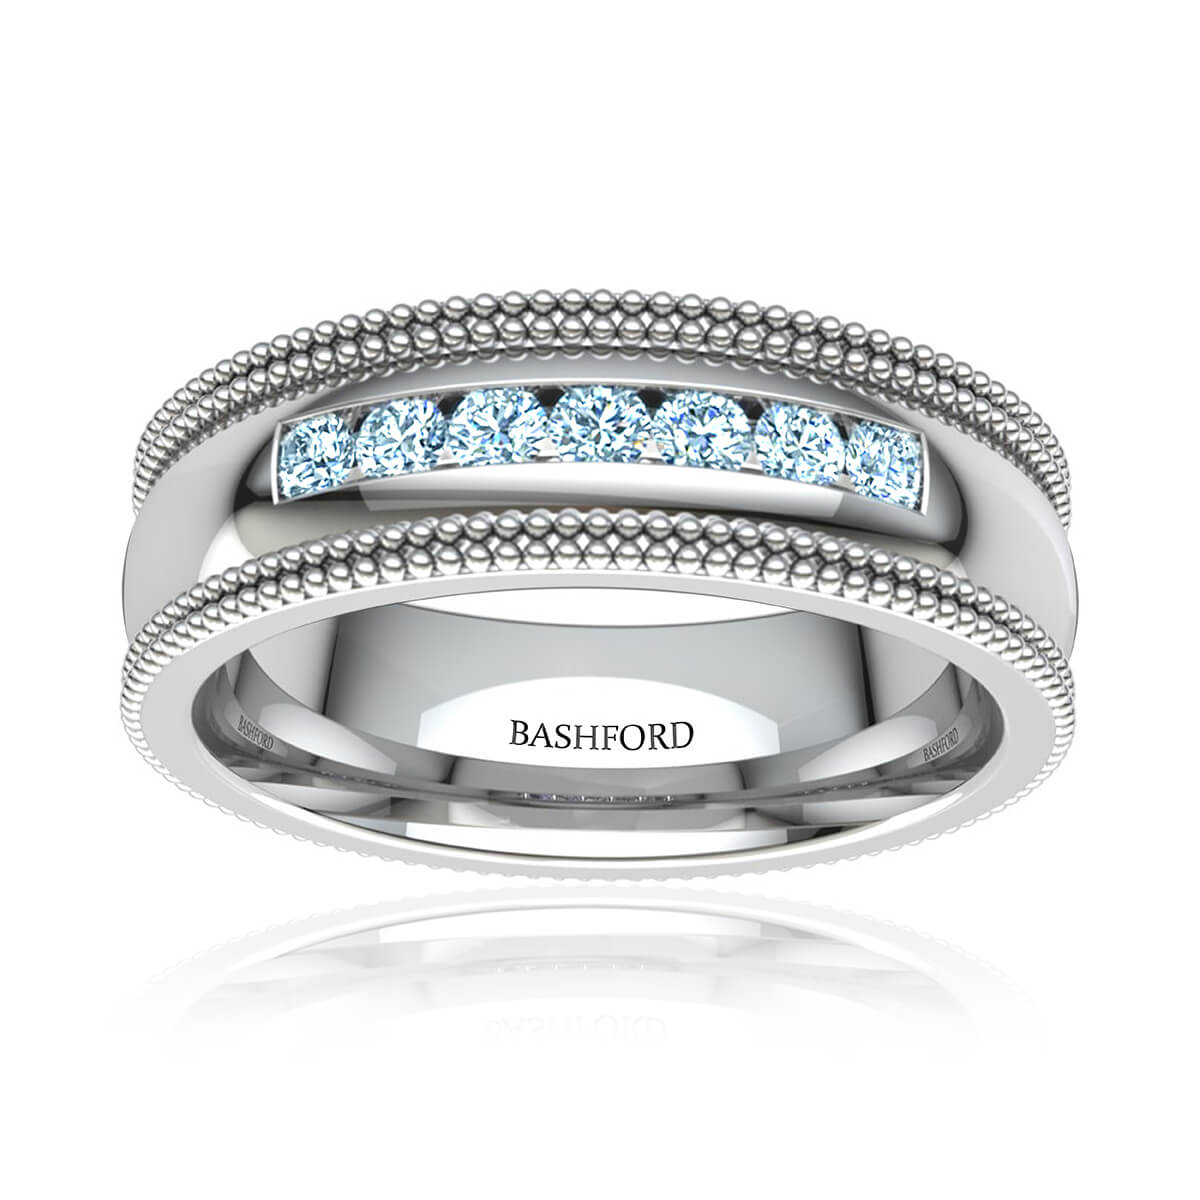 Rainier Diamond Wedding Band (1/4 CT. TW.)